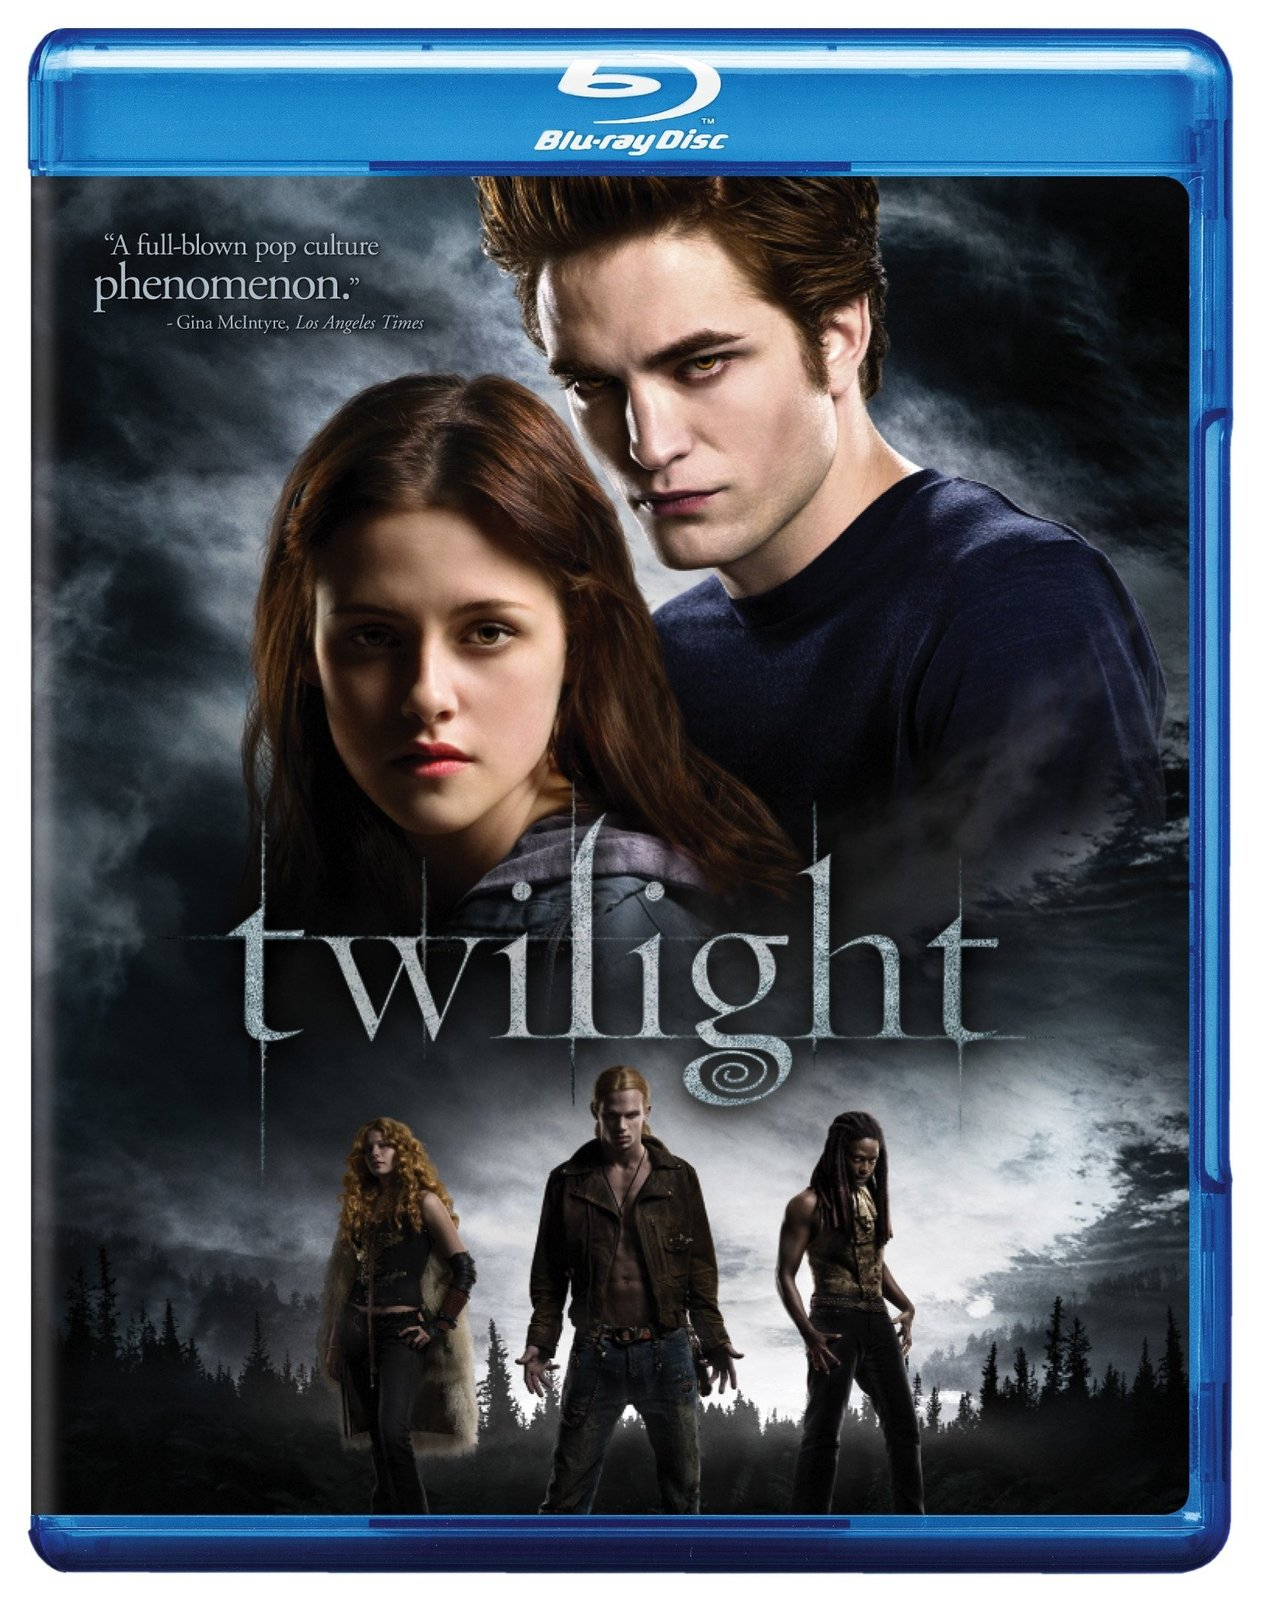 Twilight [Blu-ray] [Blu-ray] [2009]